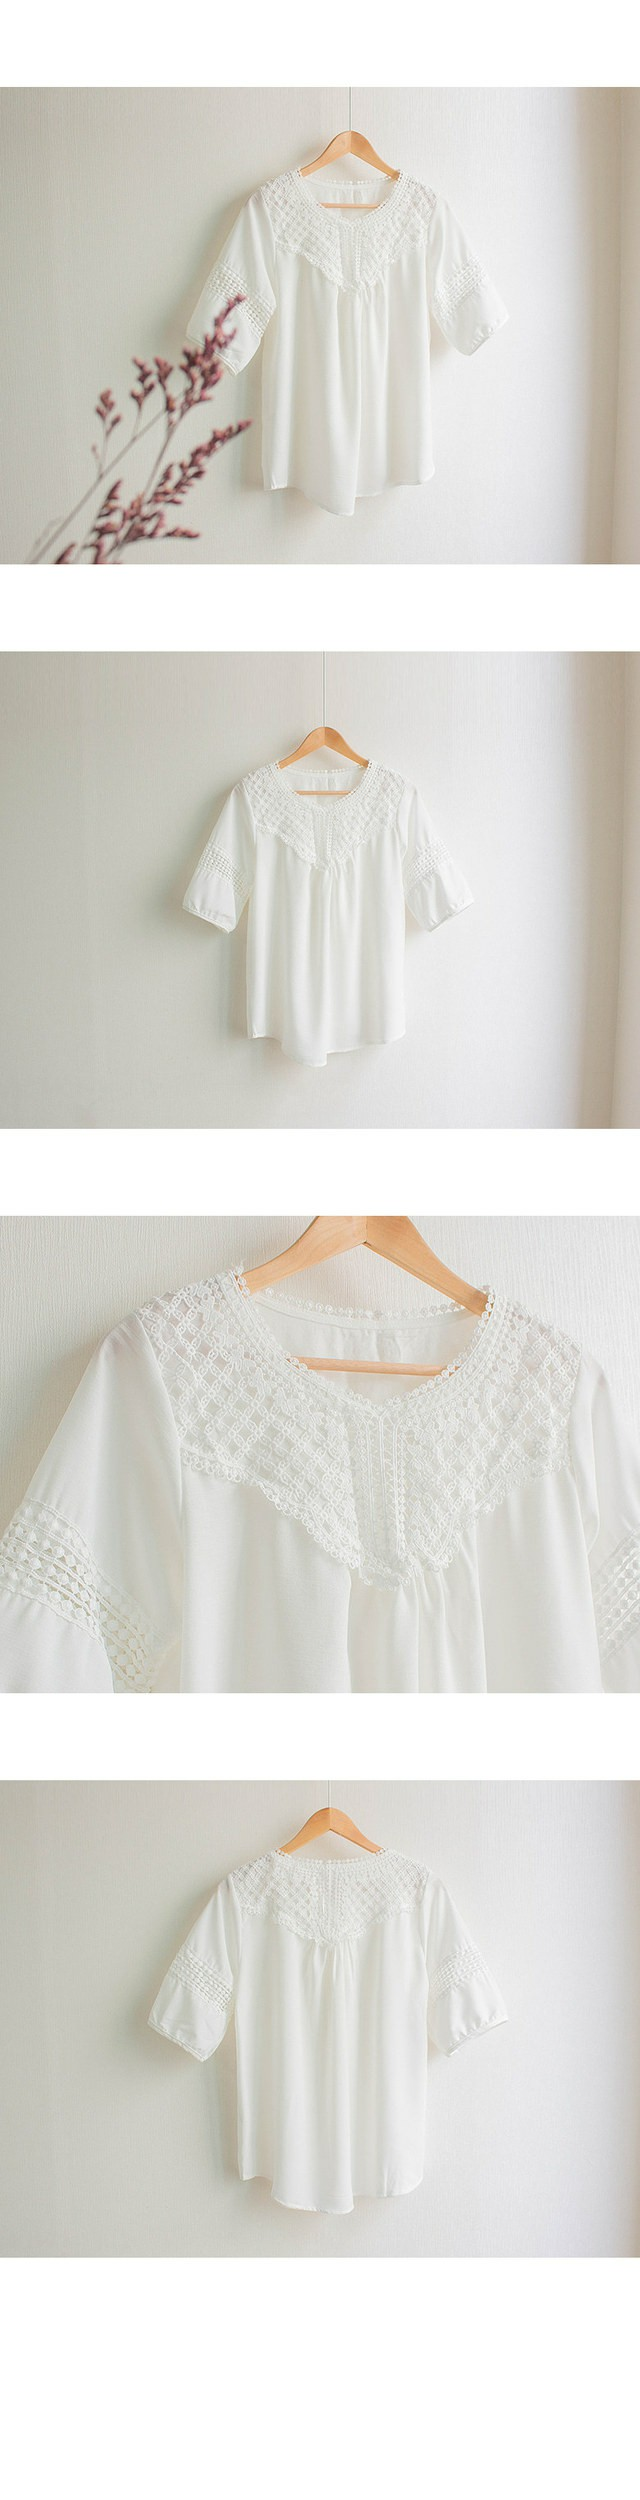 Together embroidery lace punching blouse